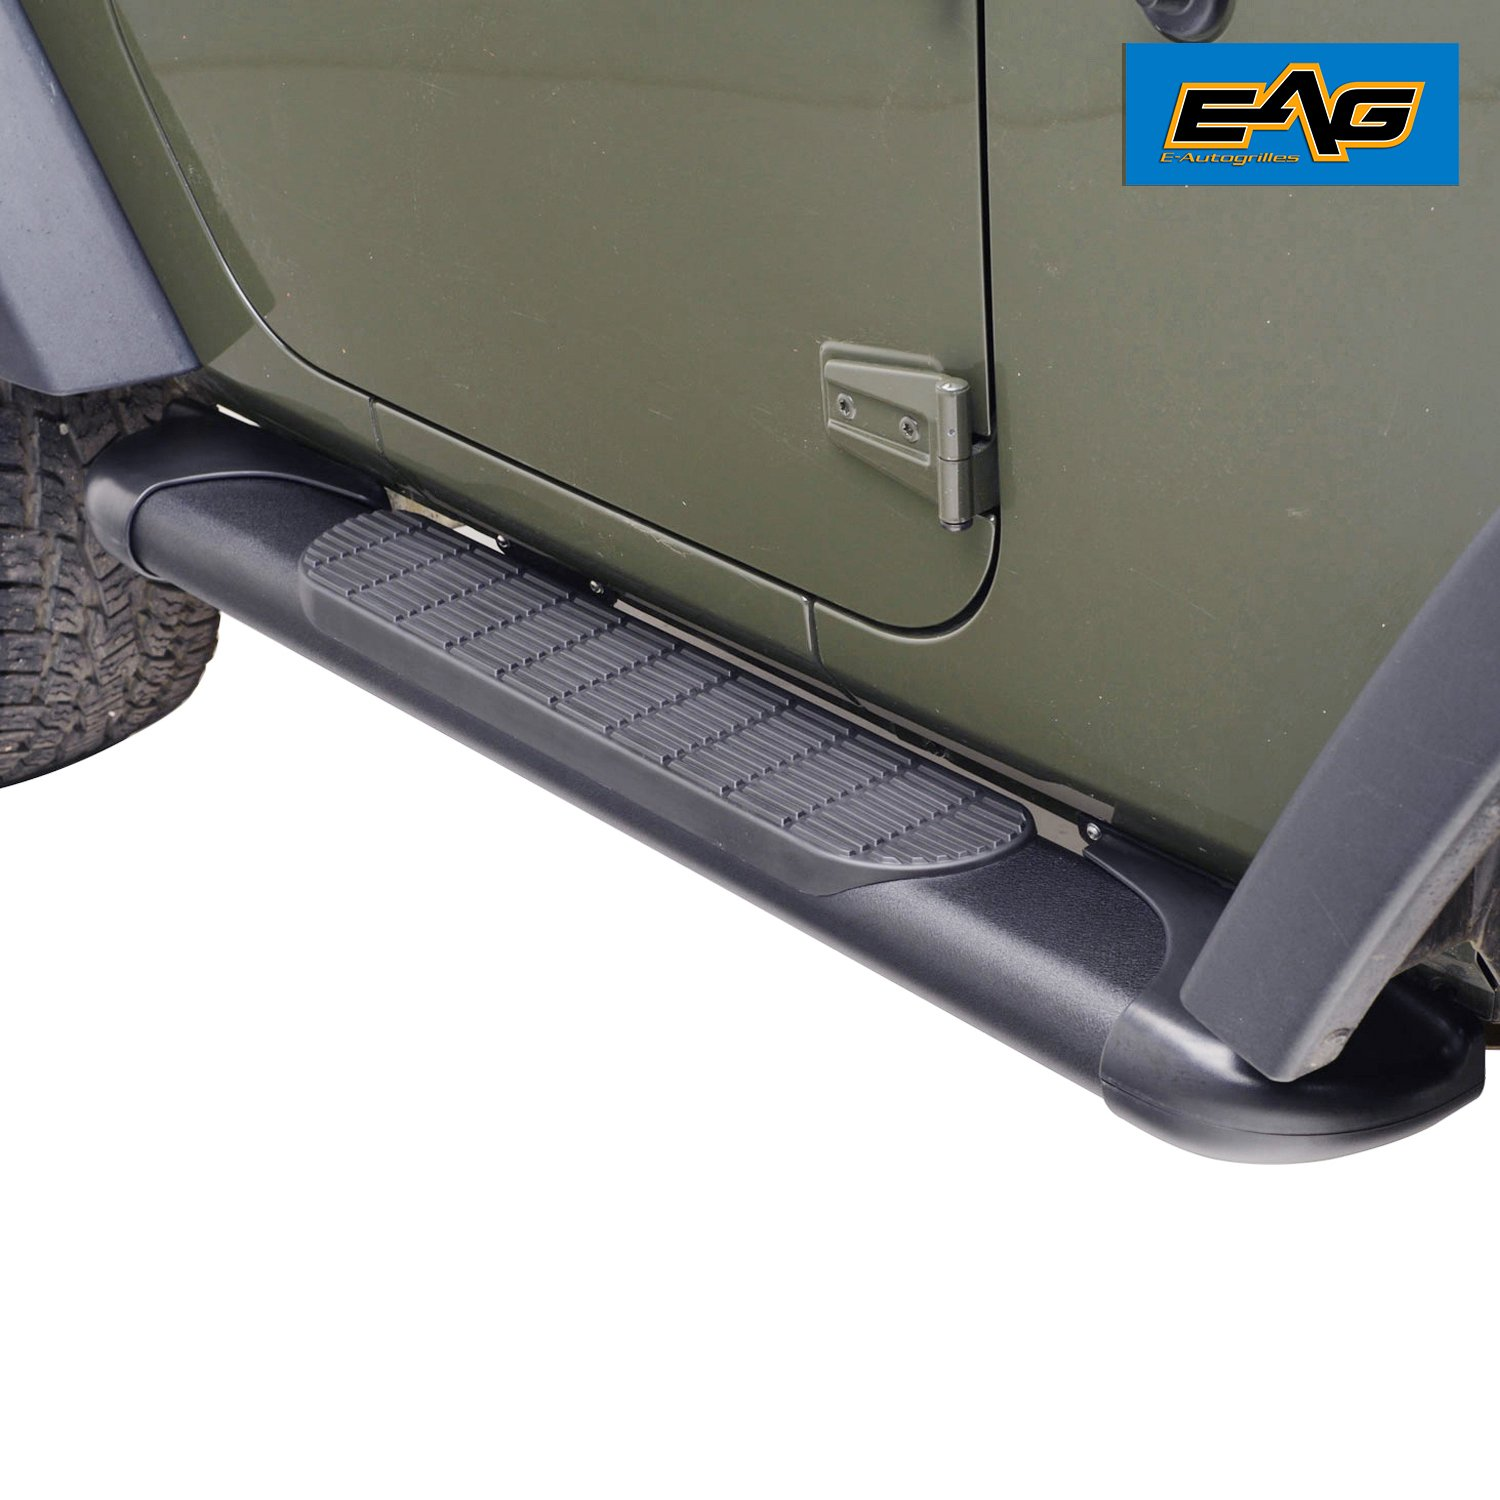 EAG JK 2 Door Steel Running Boards for 11-18 Jeep Wrangler (Nerf Bars | Side Steps | Side Bars) E-Autogrilles